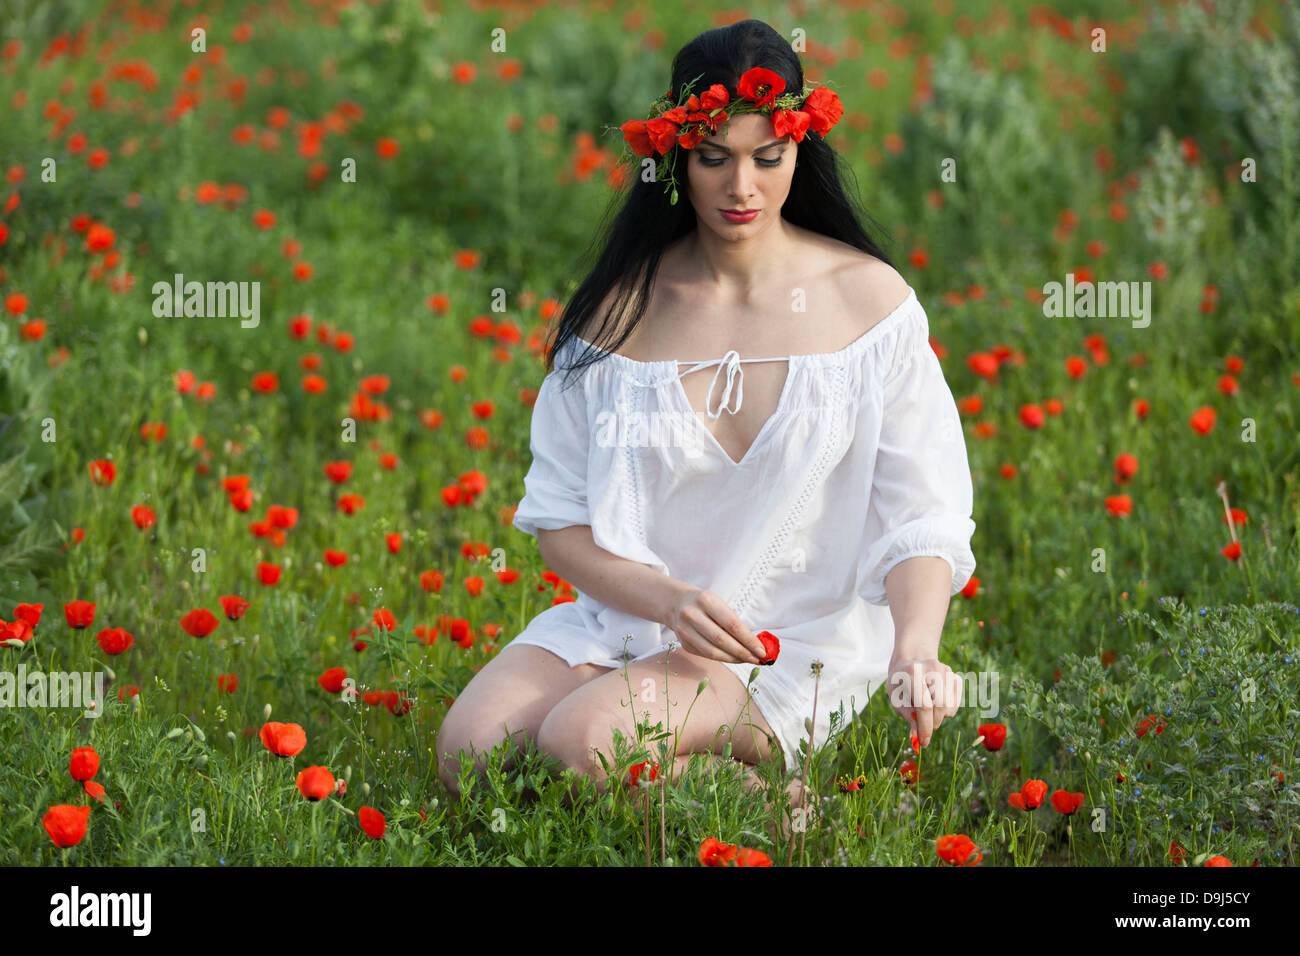 45704c5afb5 Beauty Girl On Picking Flowers Stockfotos Beauty Girl On Picking